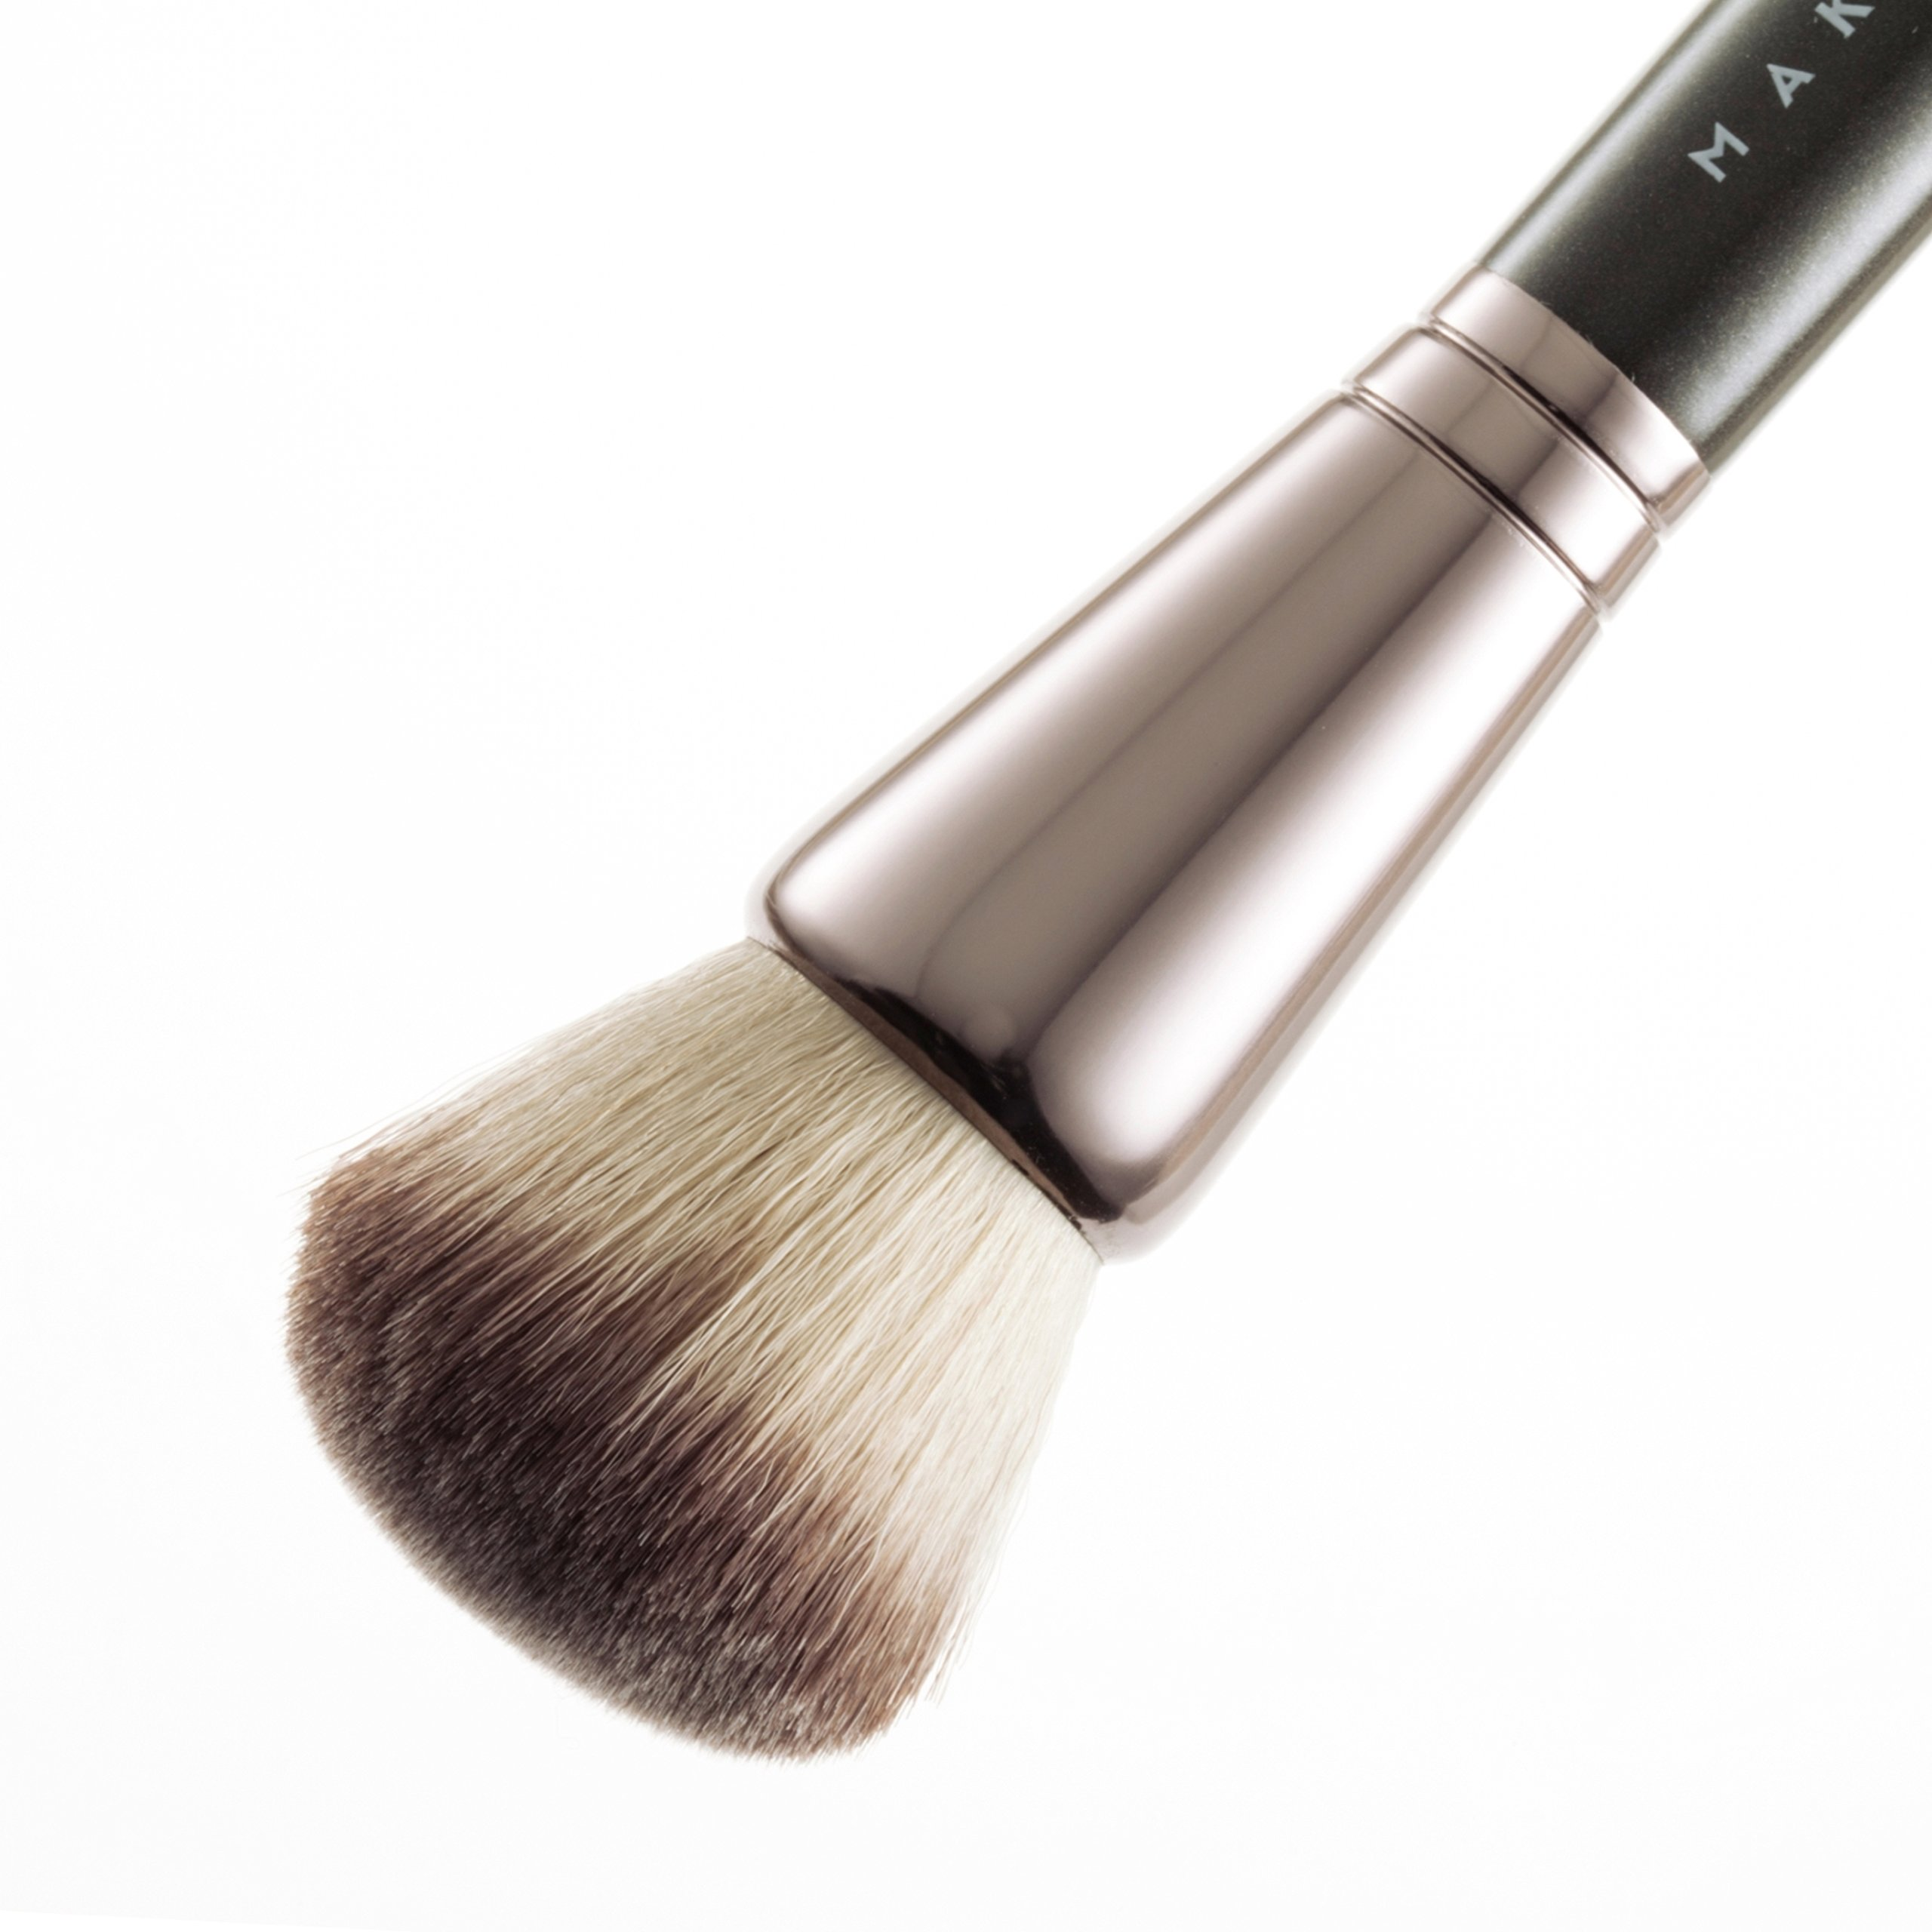 Foundation Stippling Brush by Makeup Geek #17